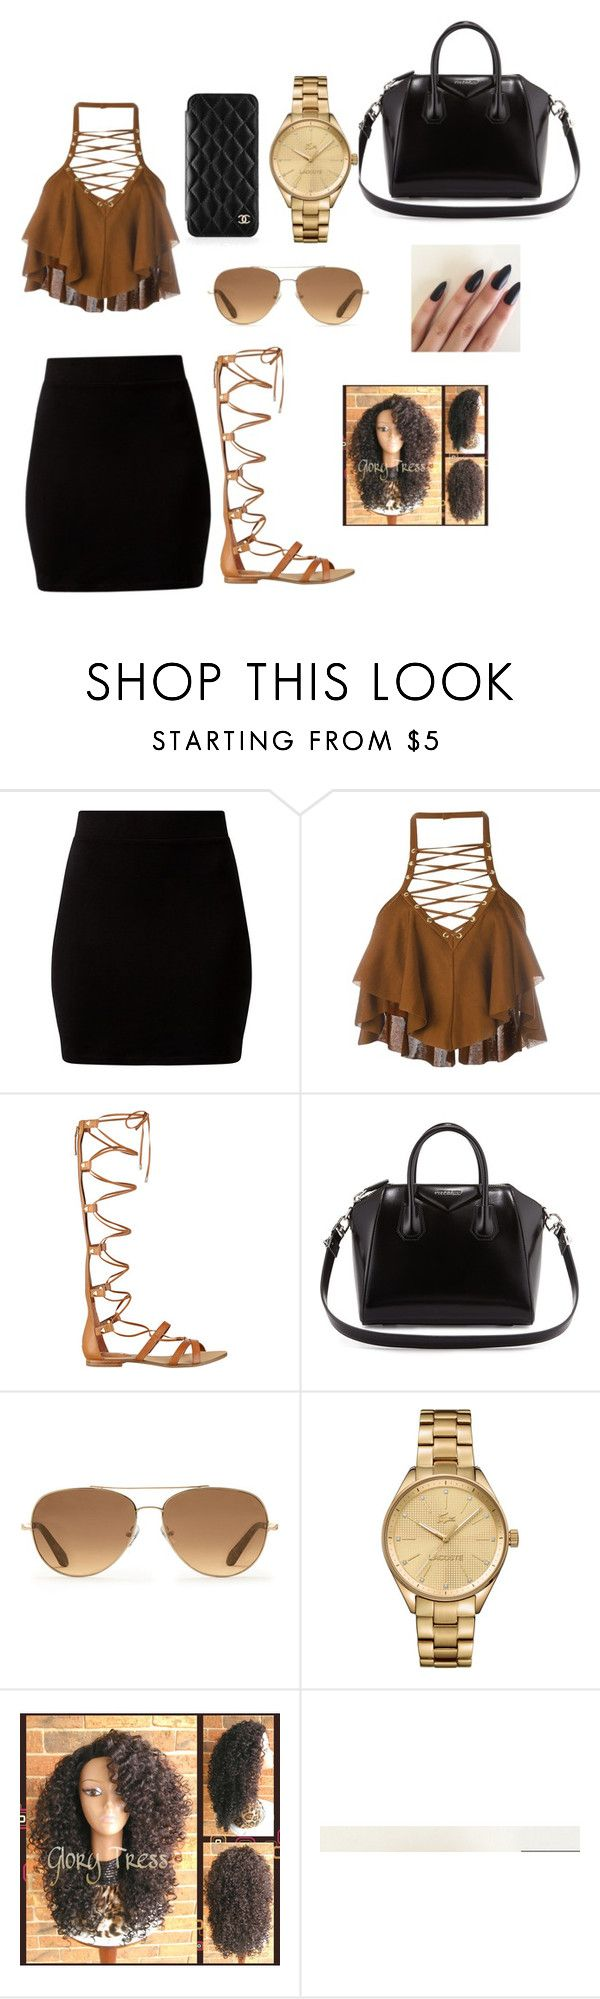 """""""My new 2016 shopping outfit """" by fashion-is-my-everything ❤ liked on Polyvore featuring Balmain, GUESS, Givenchy, Stella & Dot, Lacoste and Chanel"""